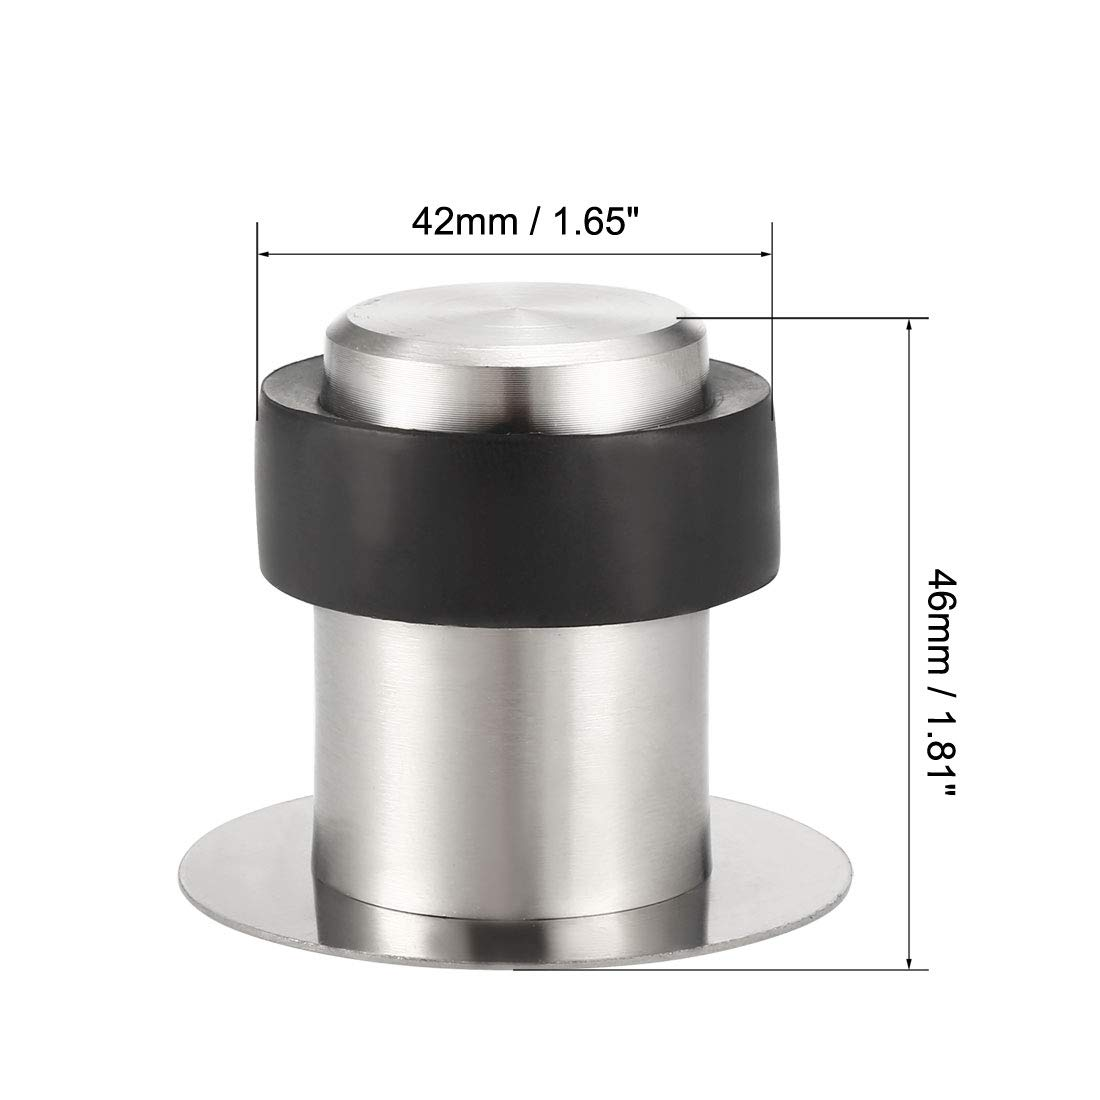 uxcell Stainless Steel Door Stopper Cylindrical Floor Mount Brushed Double-Sided Adhesive Sheets No Need to Drill 46mm Height 2Pcs